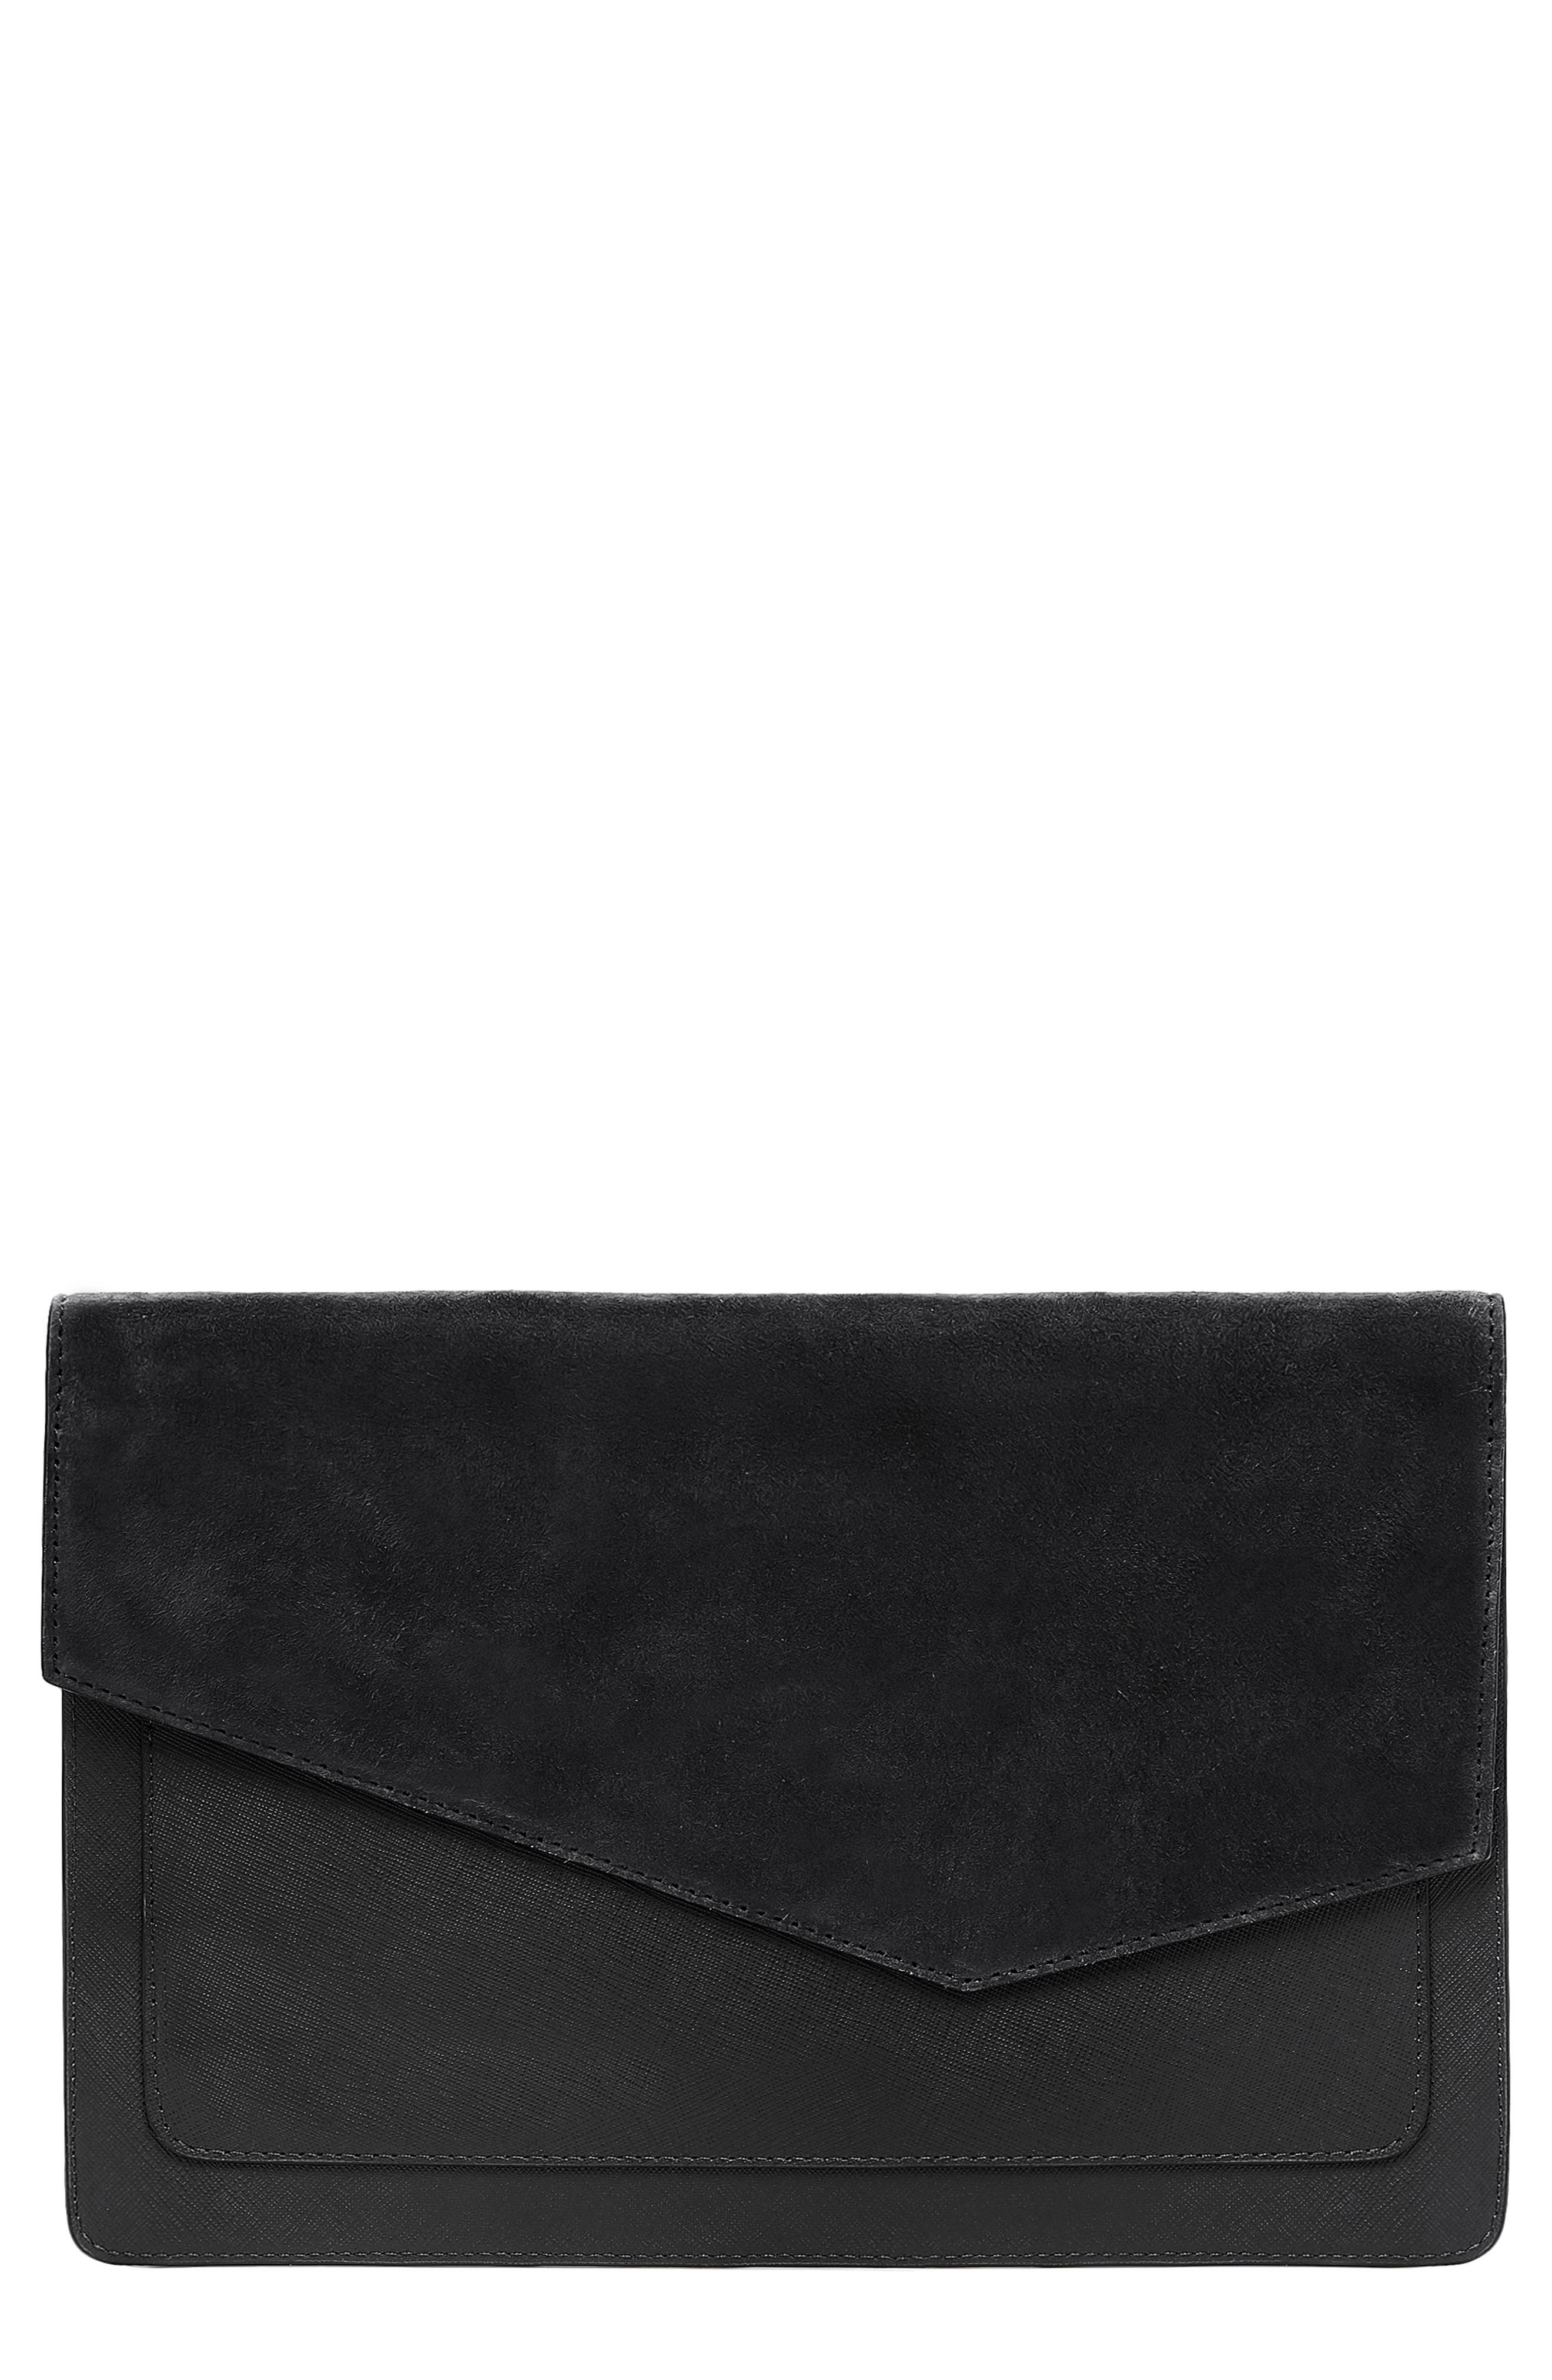 Cobble Hill Calfskin Leather Flap Clutch,                         Main,                         color, 001